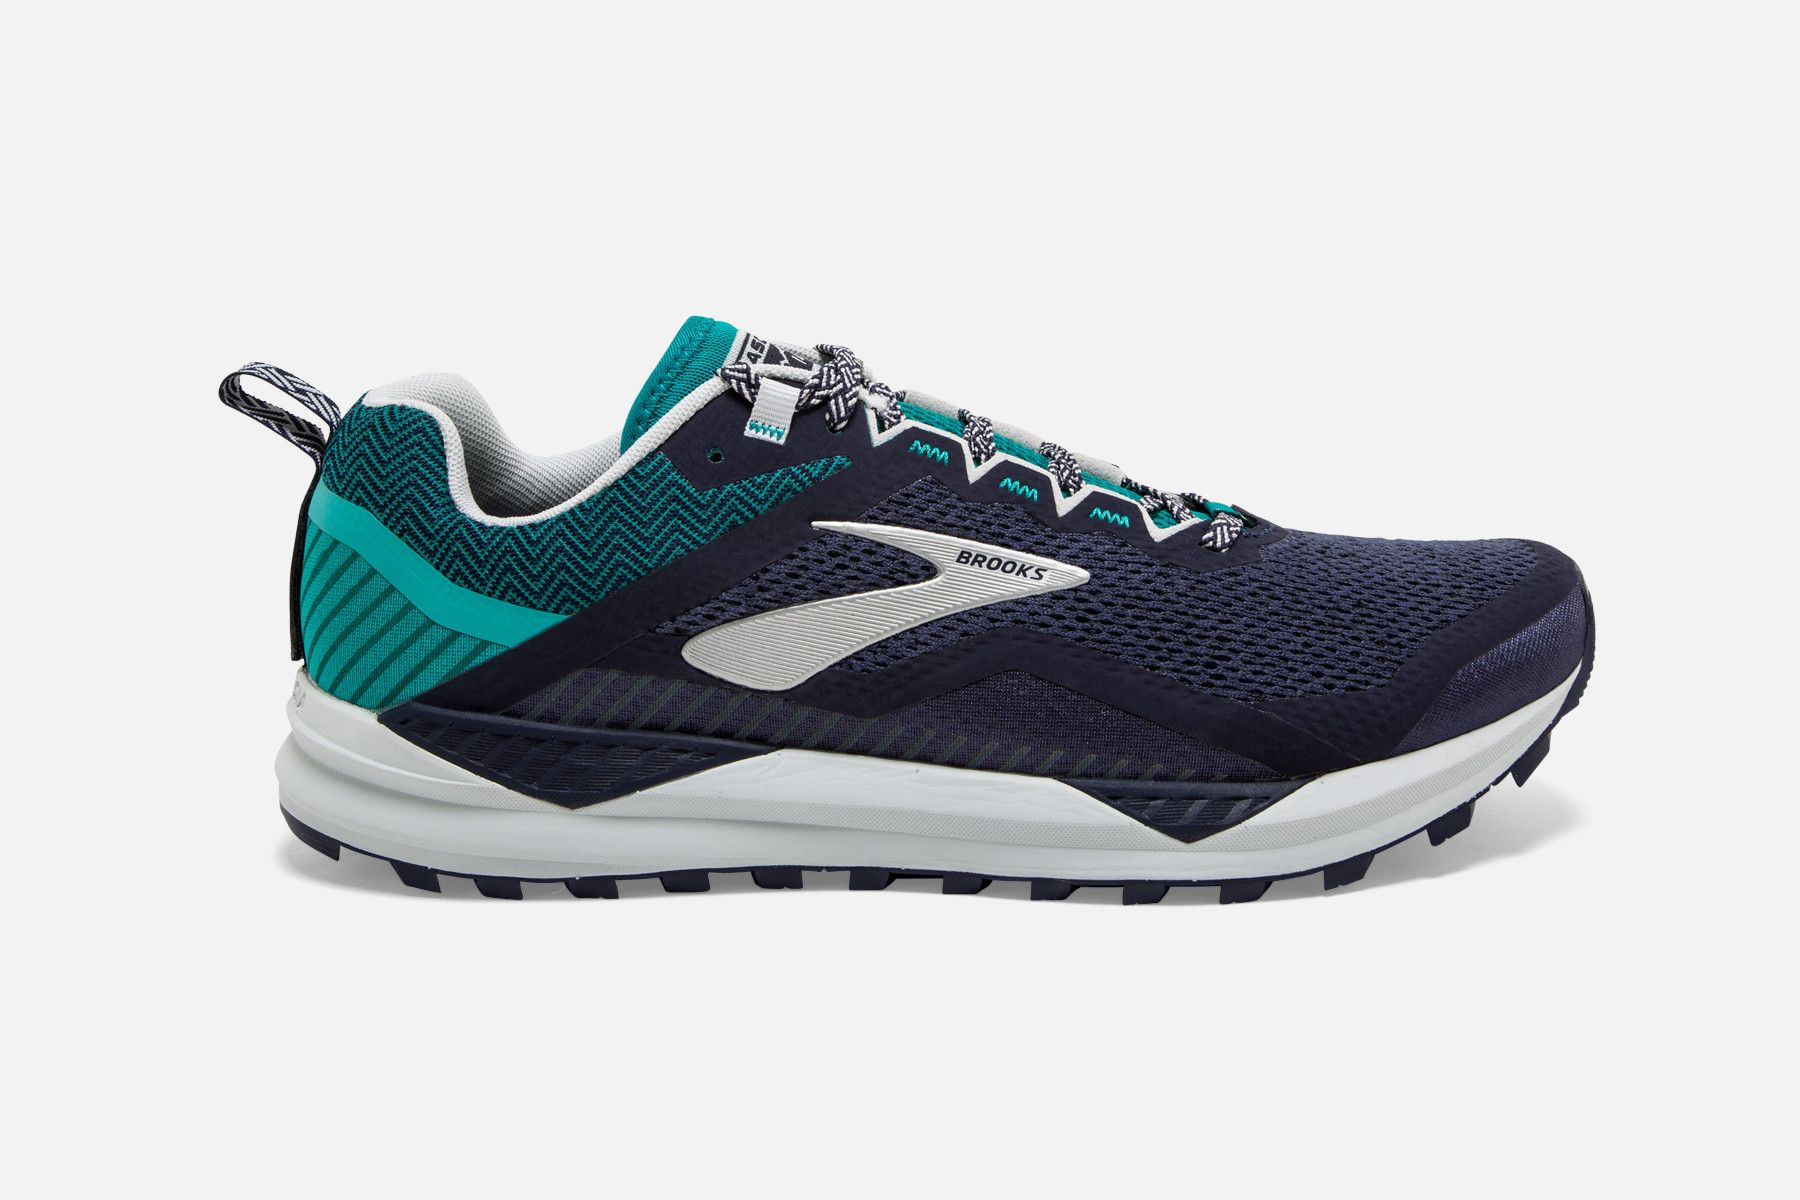 Brooks running shoes, Hiking boots